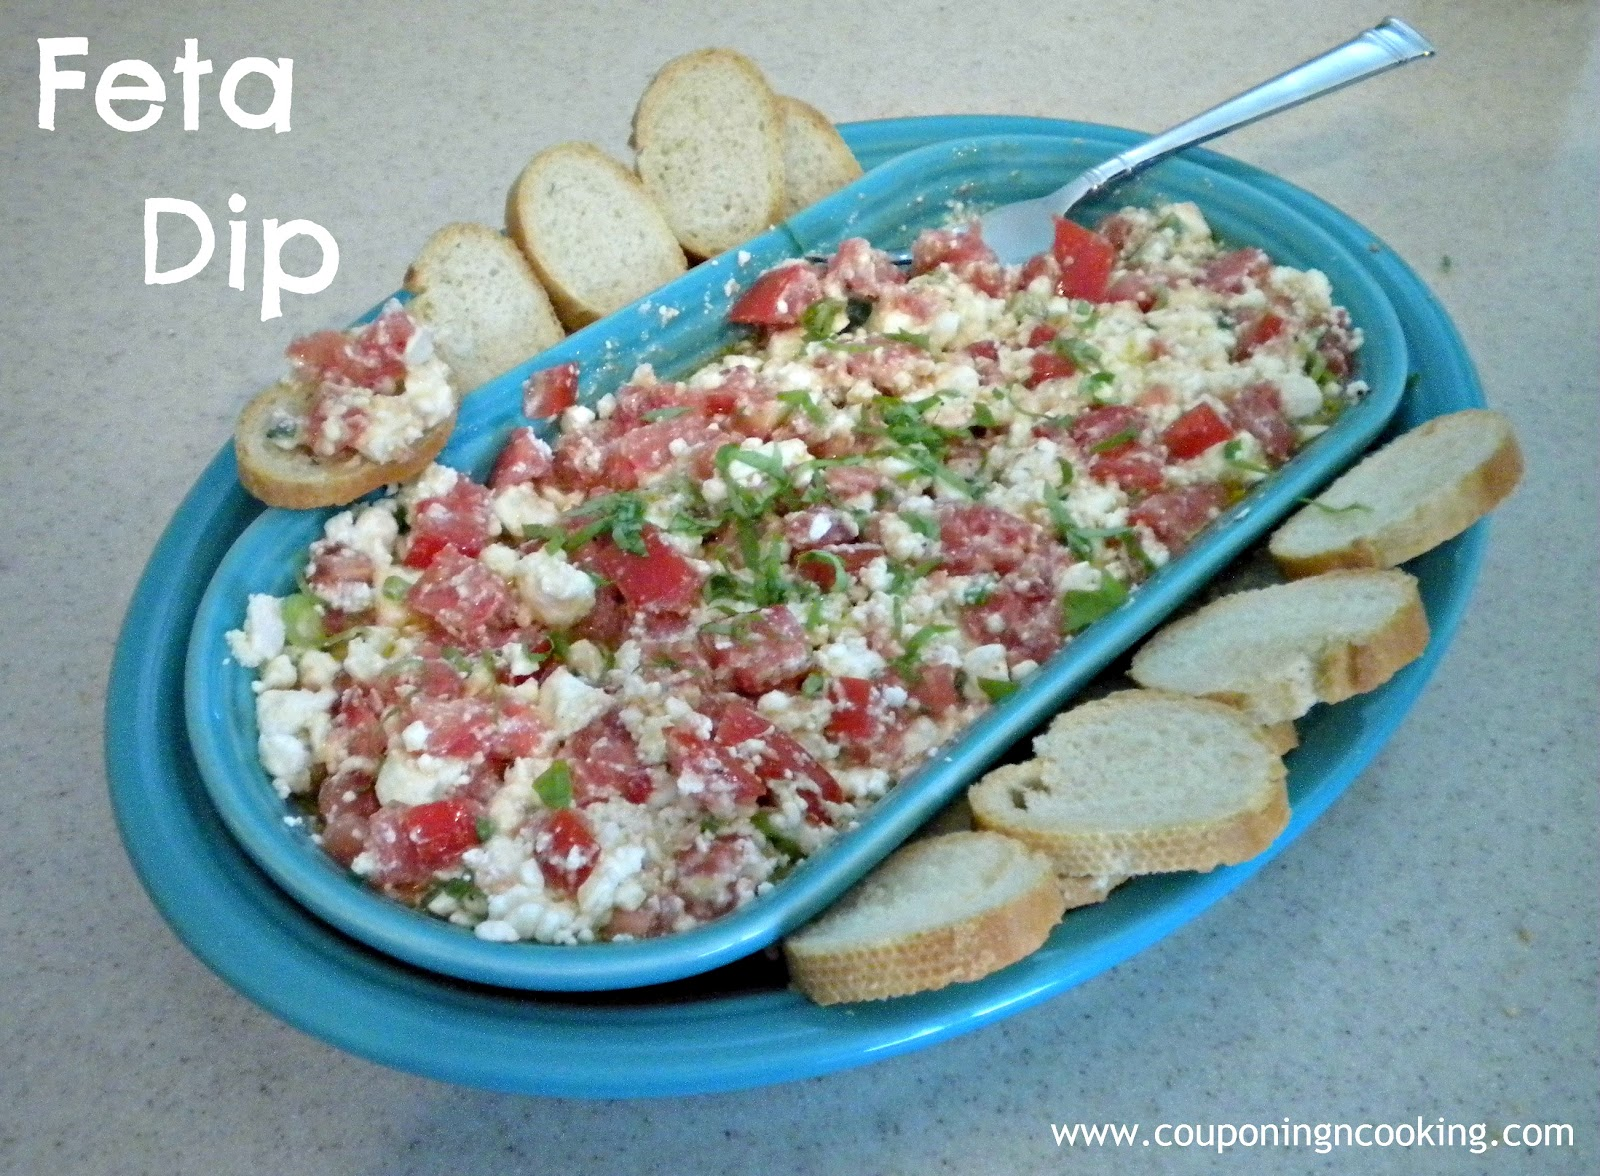 Couponing & Cooking: Light & Easy Feta Dip